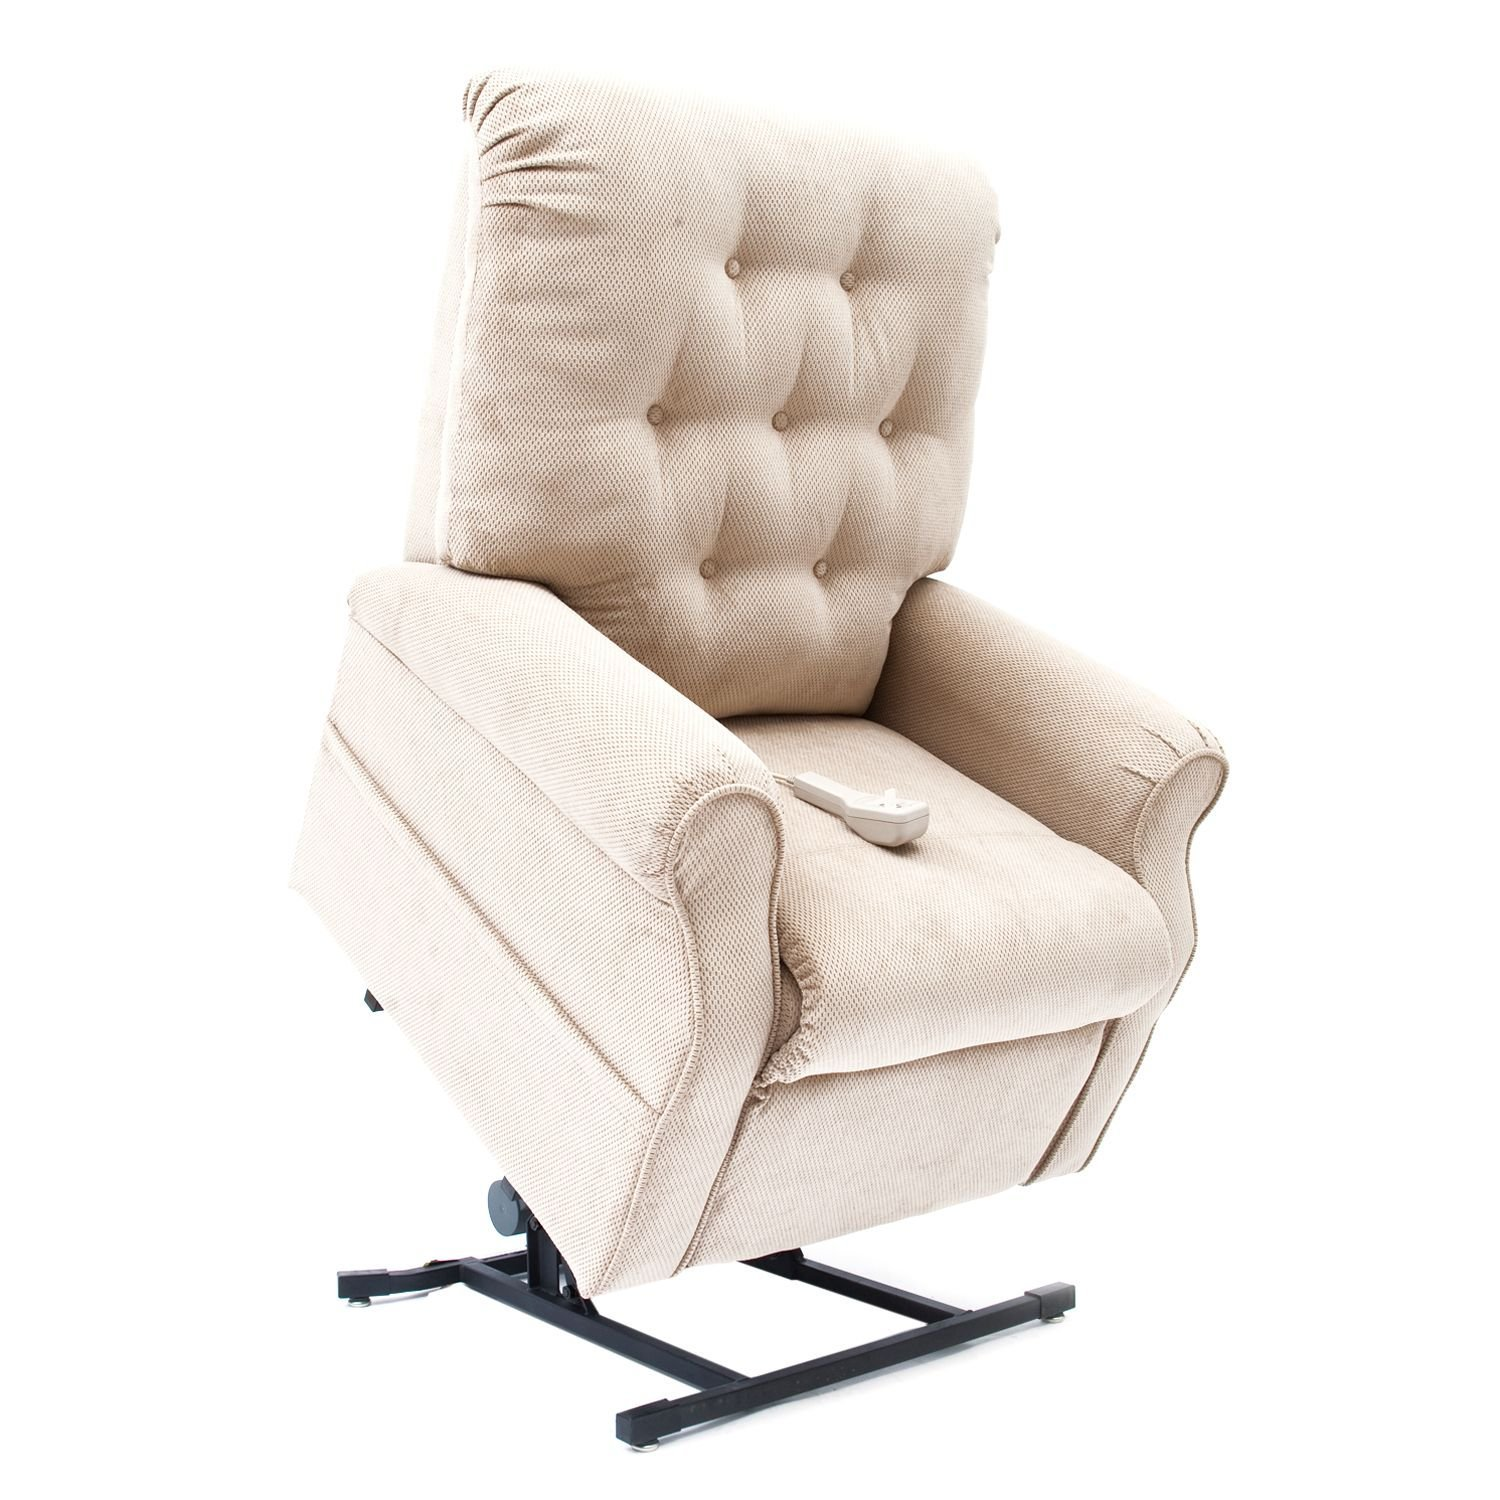 3 Position Lift Chair with Chaise Pad Color: Fawn